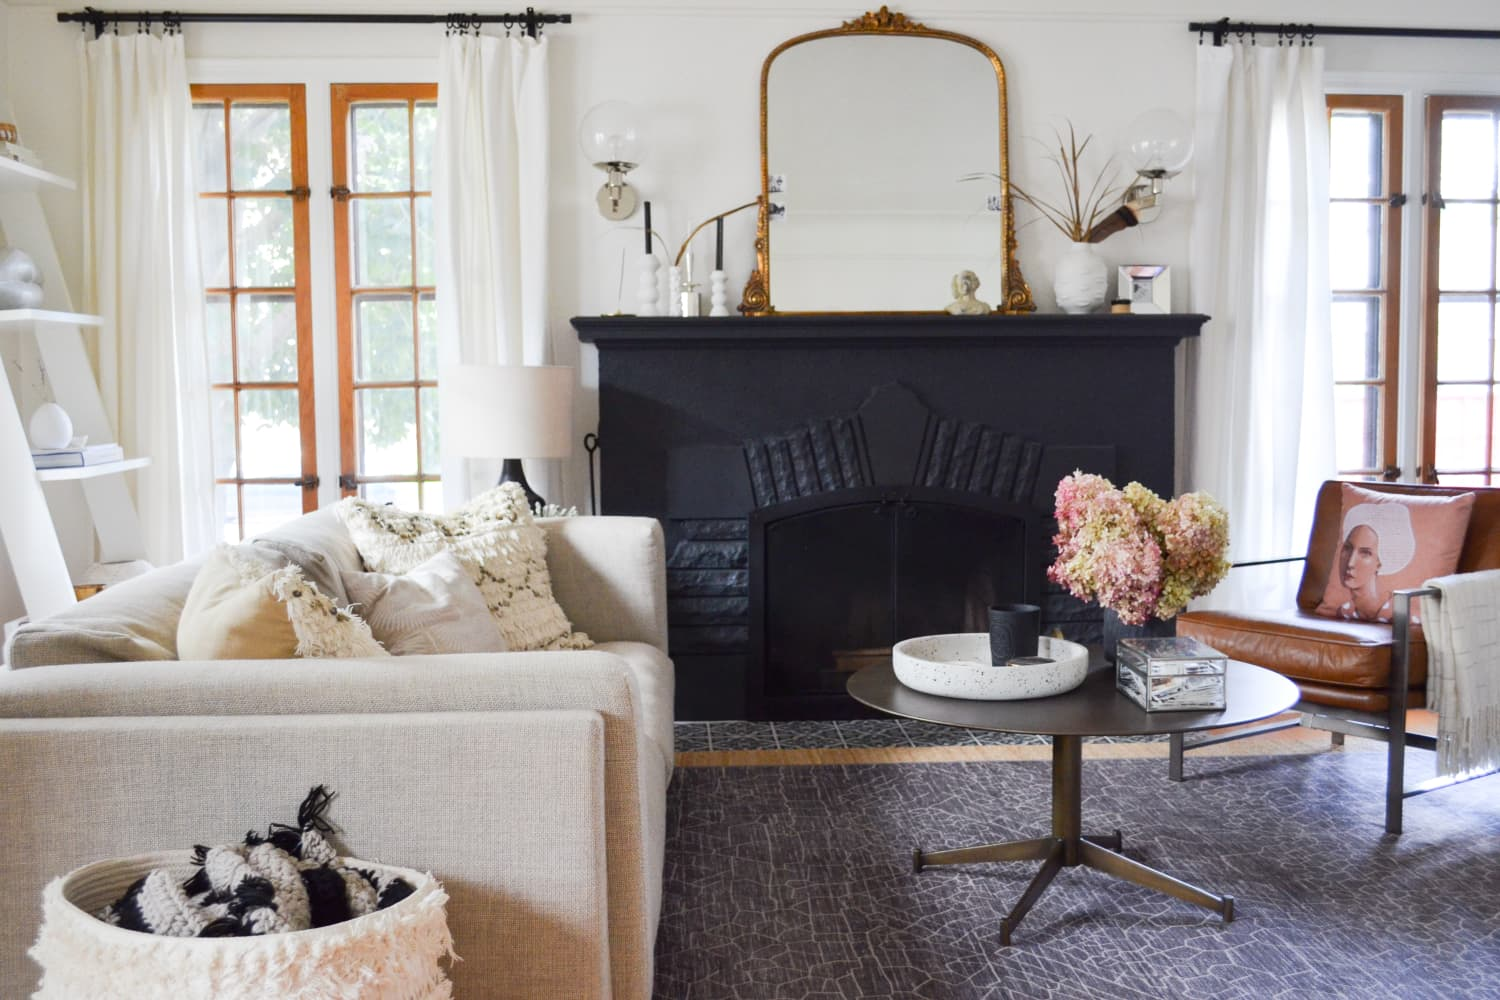 Transitional 1930s Tudor Style Home Photos Apartment Therapy